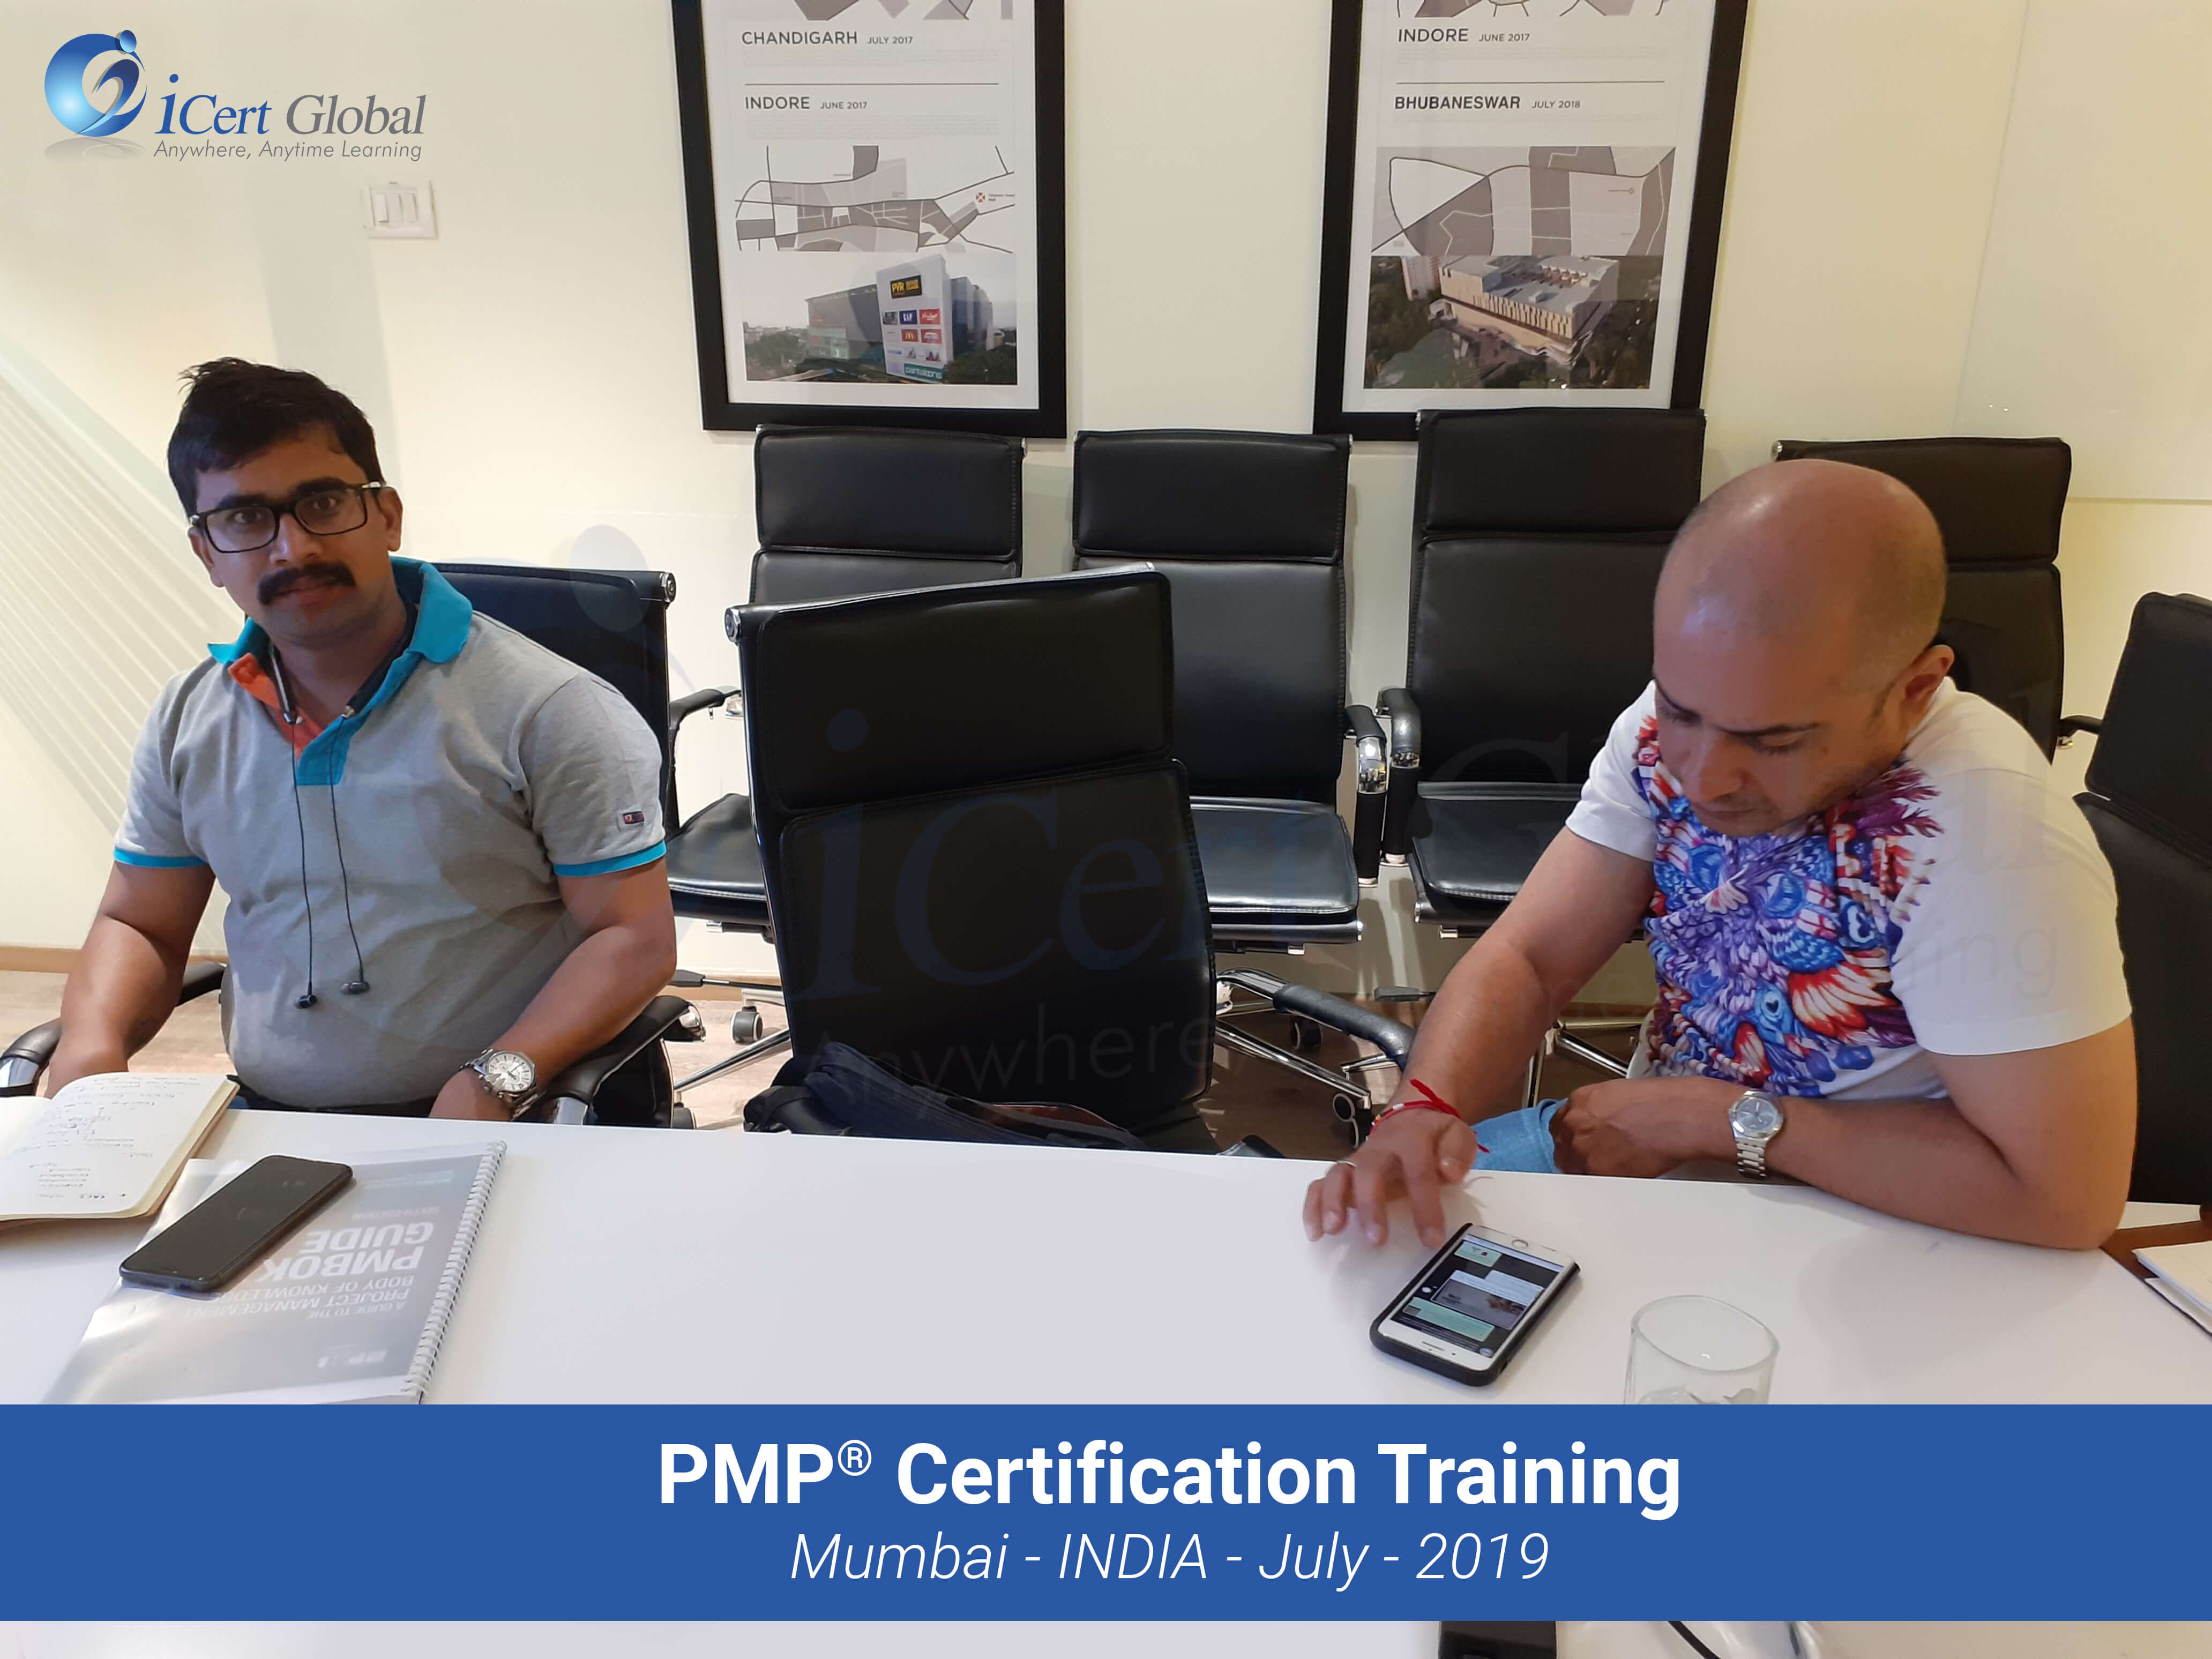 PMP Project Management Certification Training Course conducted by iCert Global in Mumbai, India in July 2019